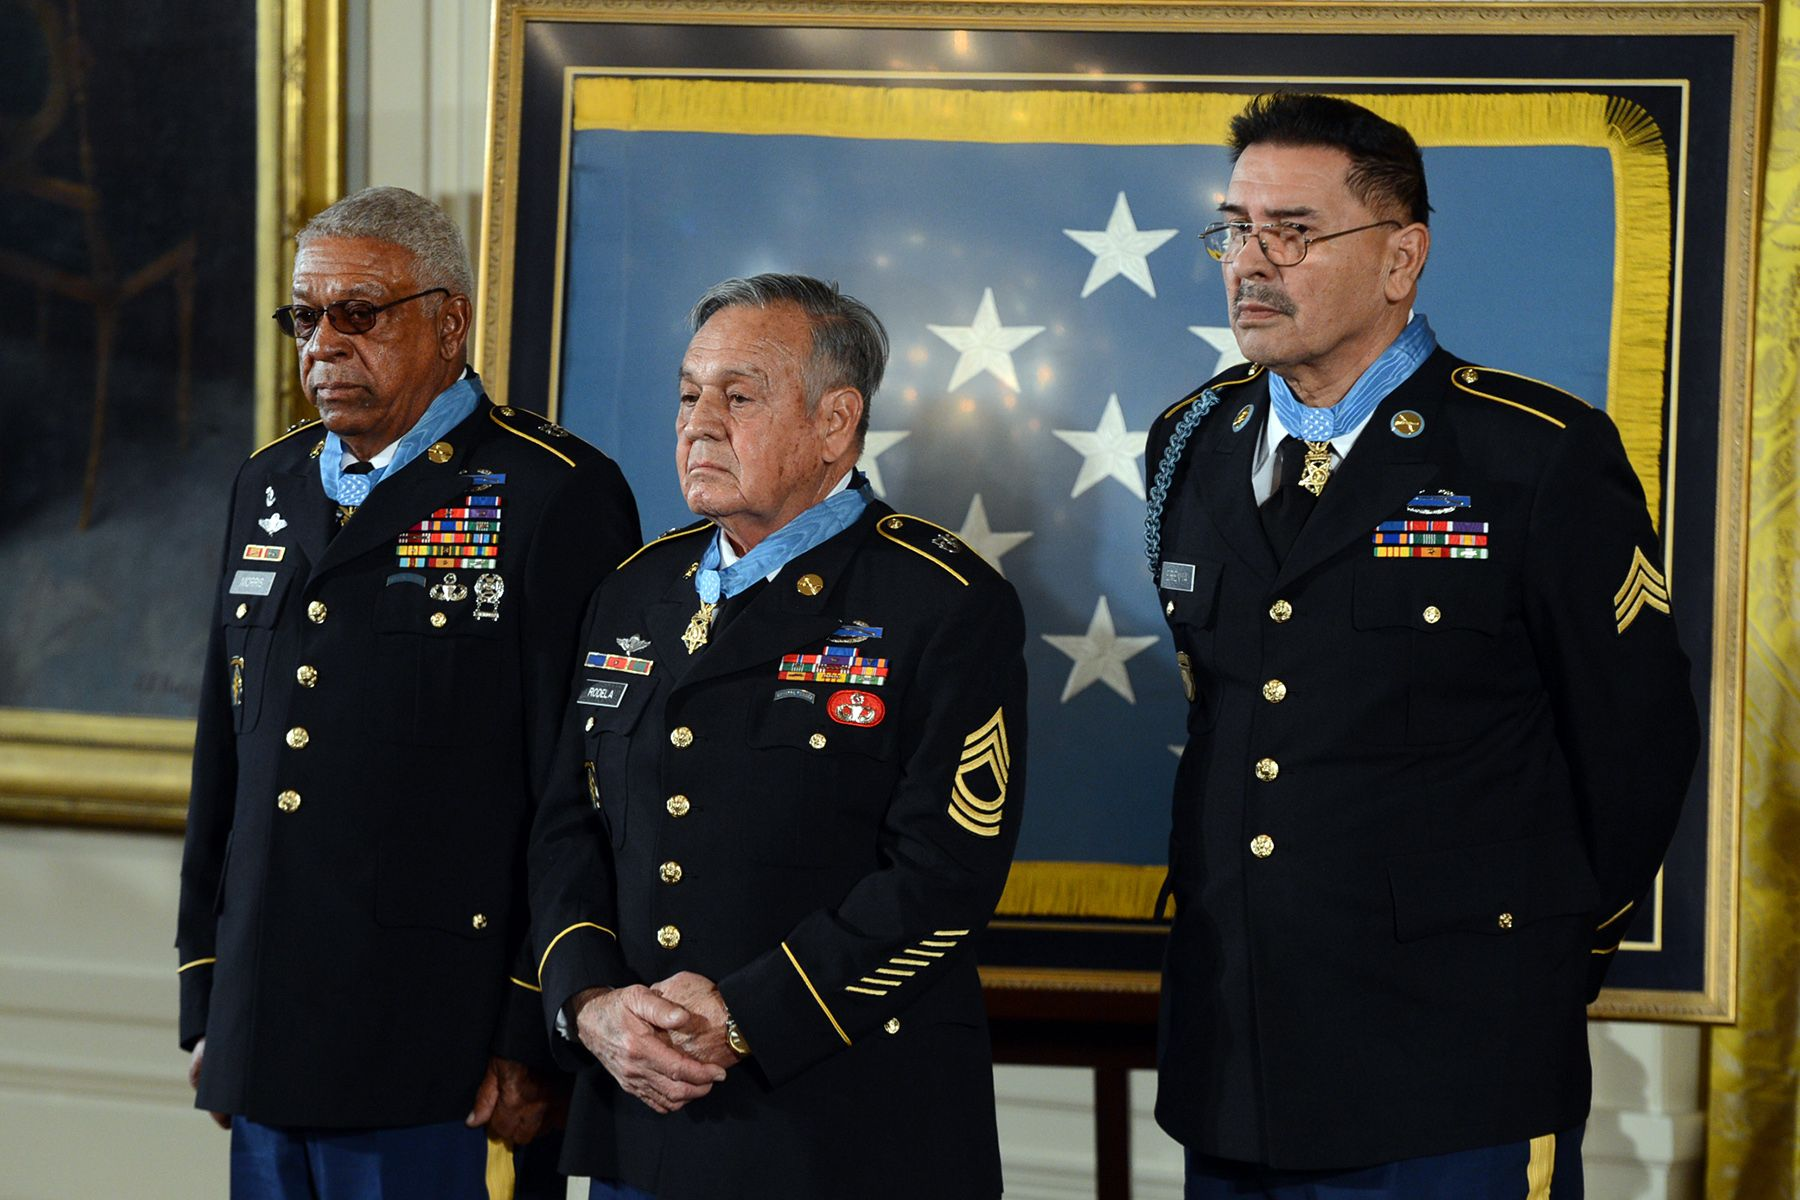 The living recipients of medal of honor among army veterans